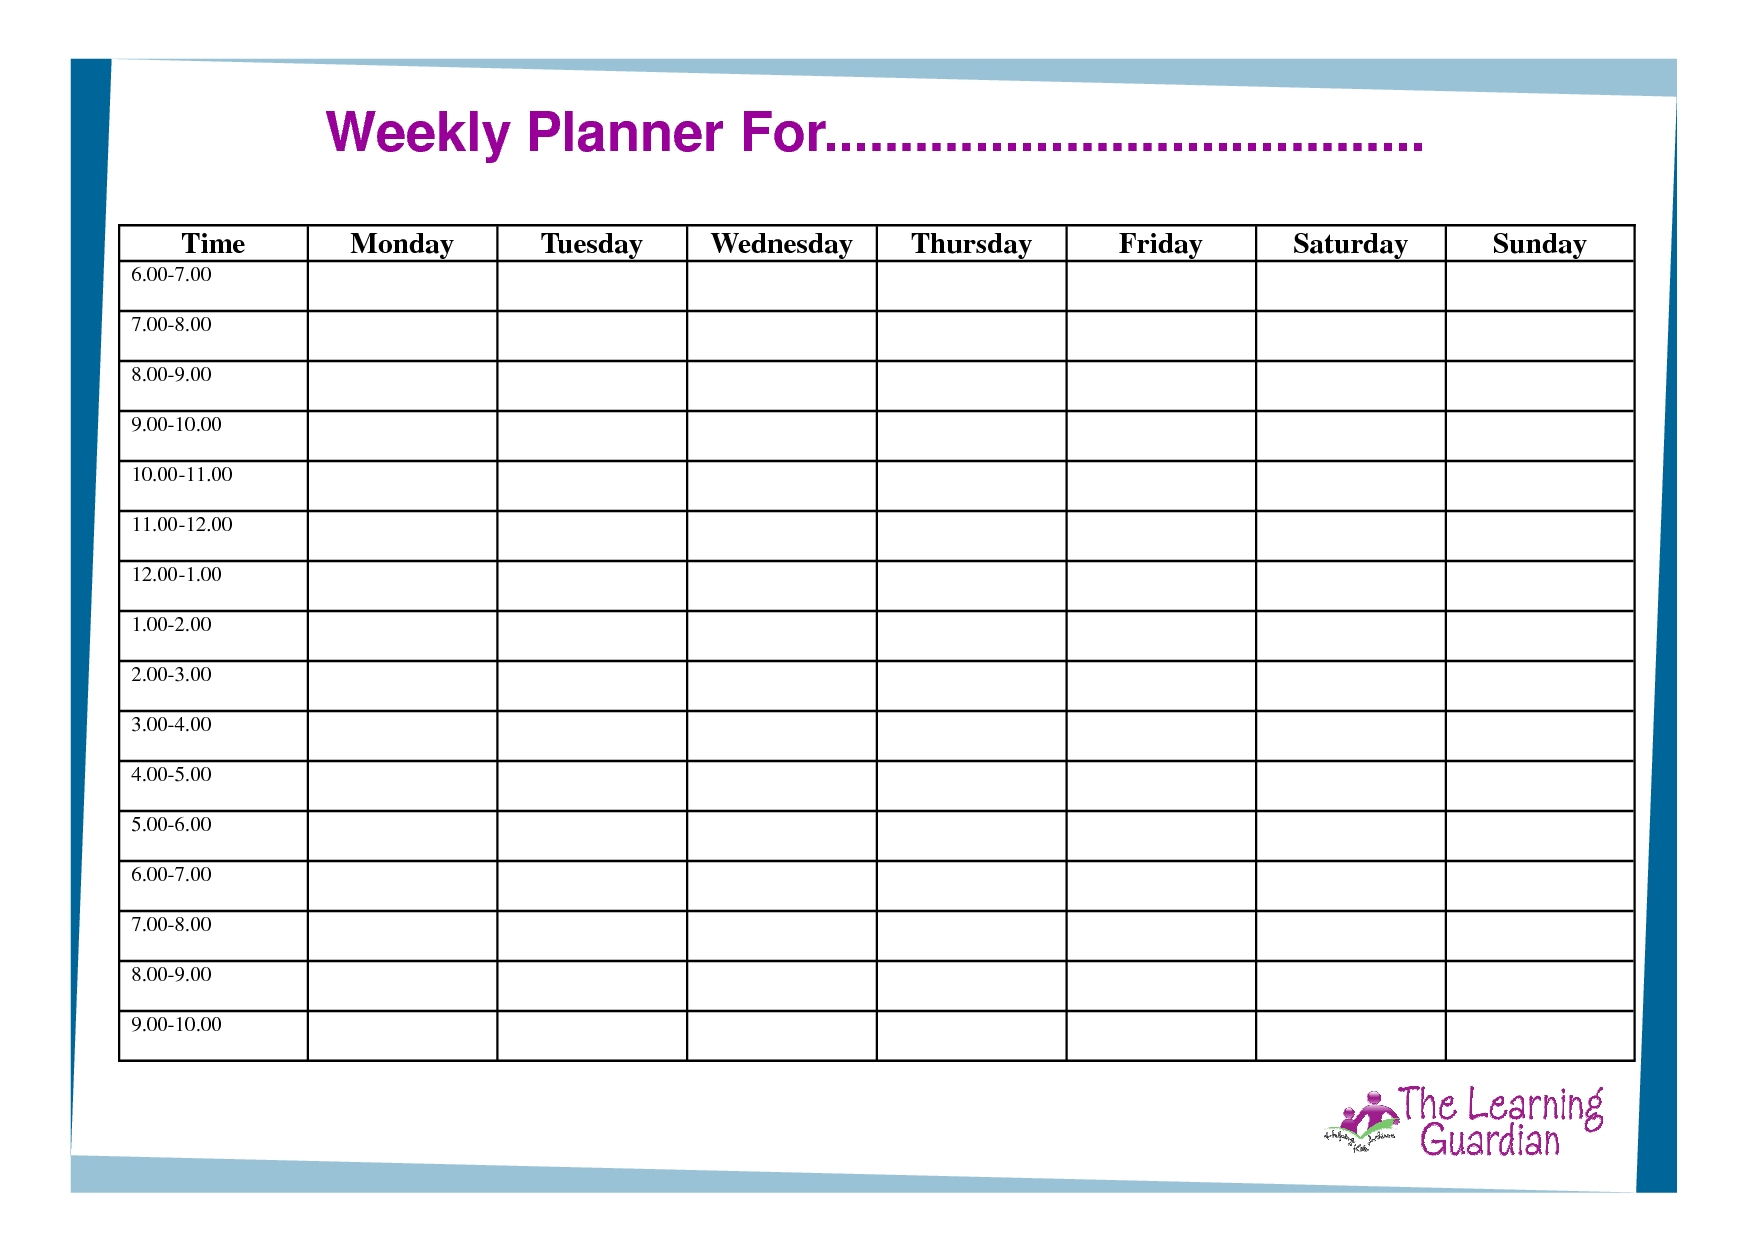 Weekly Planner With Time Slots Word Template - Calendar  Calendar With Times Slots